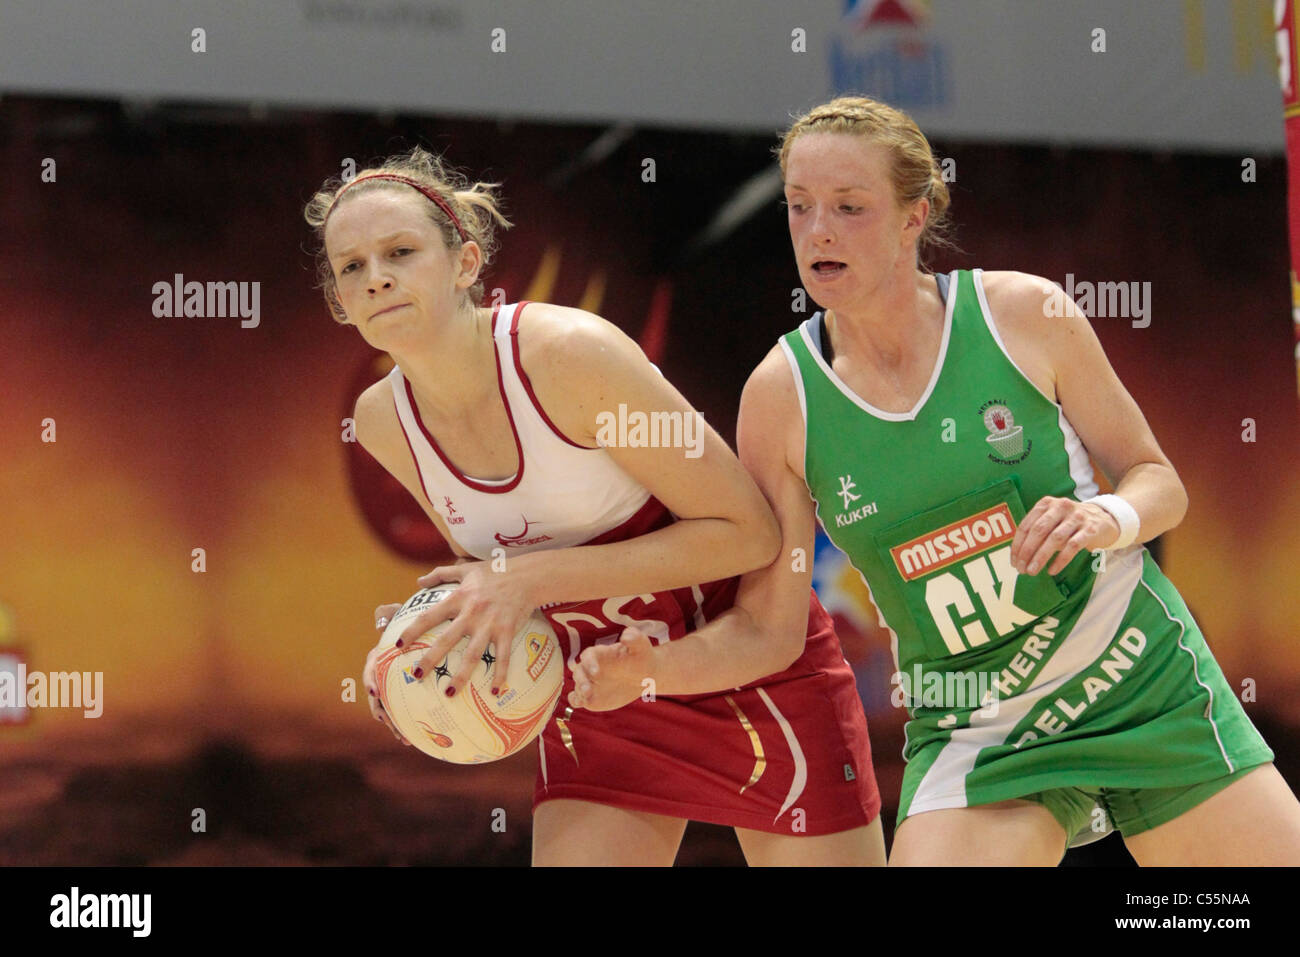 08.07.2011 Joanne Harten of England(left) and Gemma Gibney battle for the ball during the Quarter-finals between - Stock Image